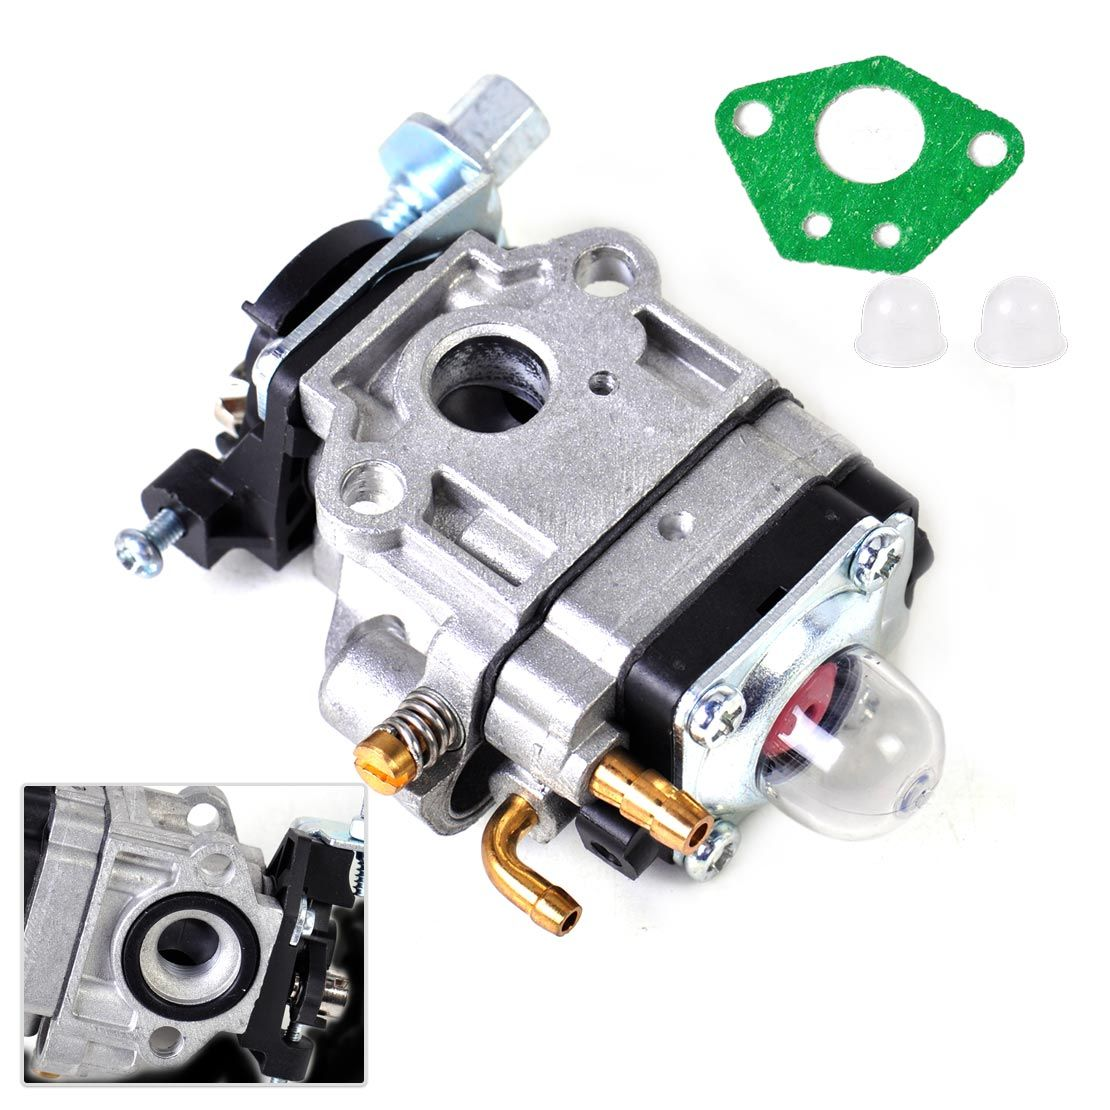 DWCX 2 Stroke Carburetor 10mm Carb For Mini Moto Blade Goped With 26CC Tanaka Purefire Engine